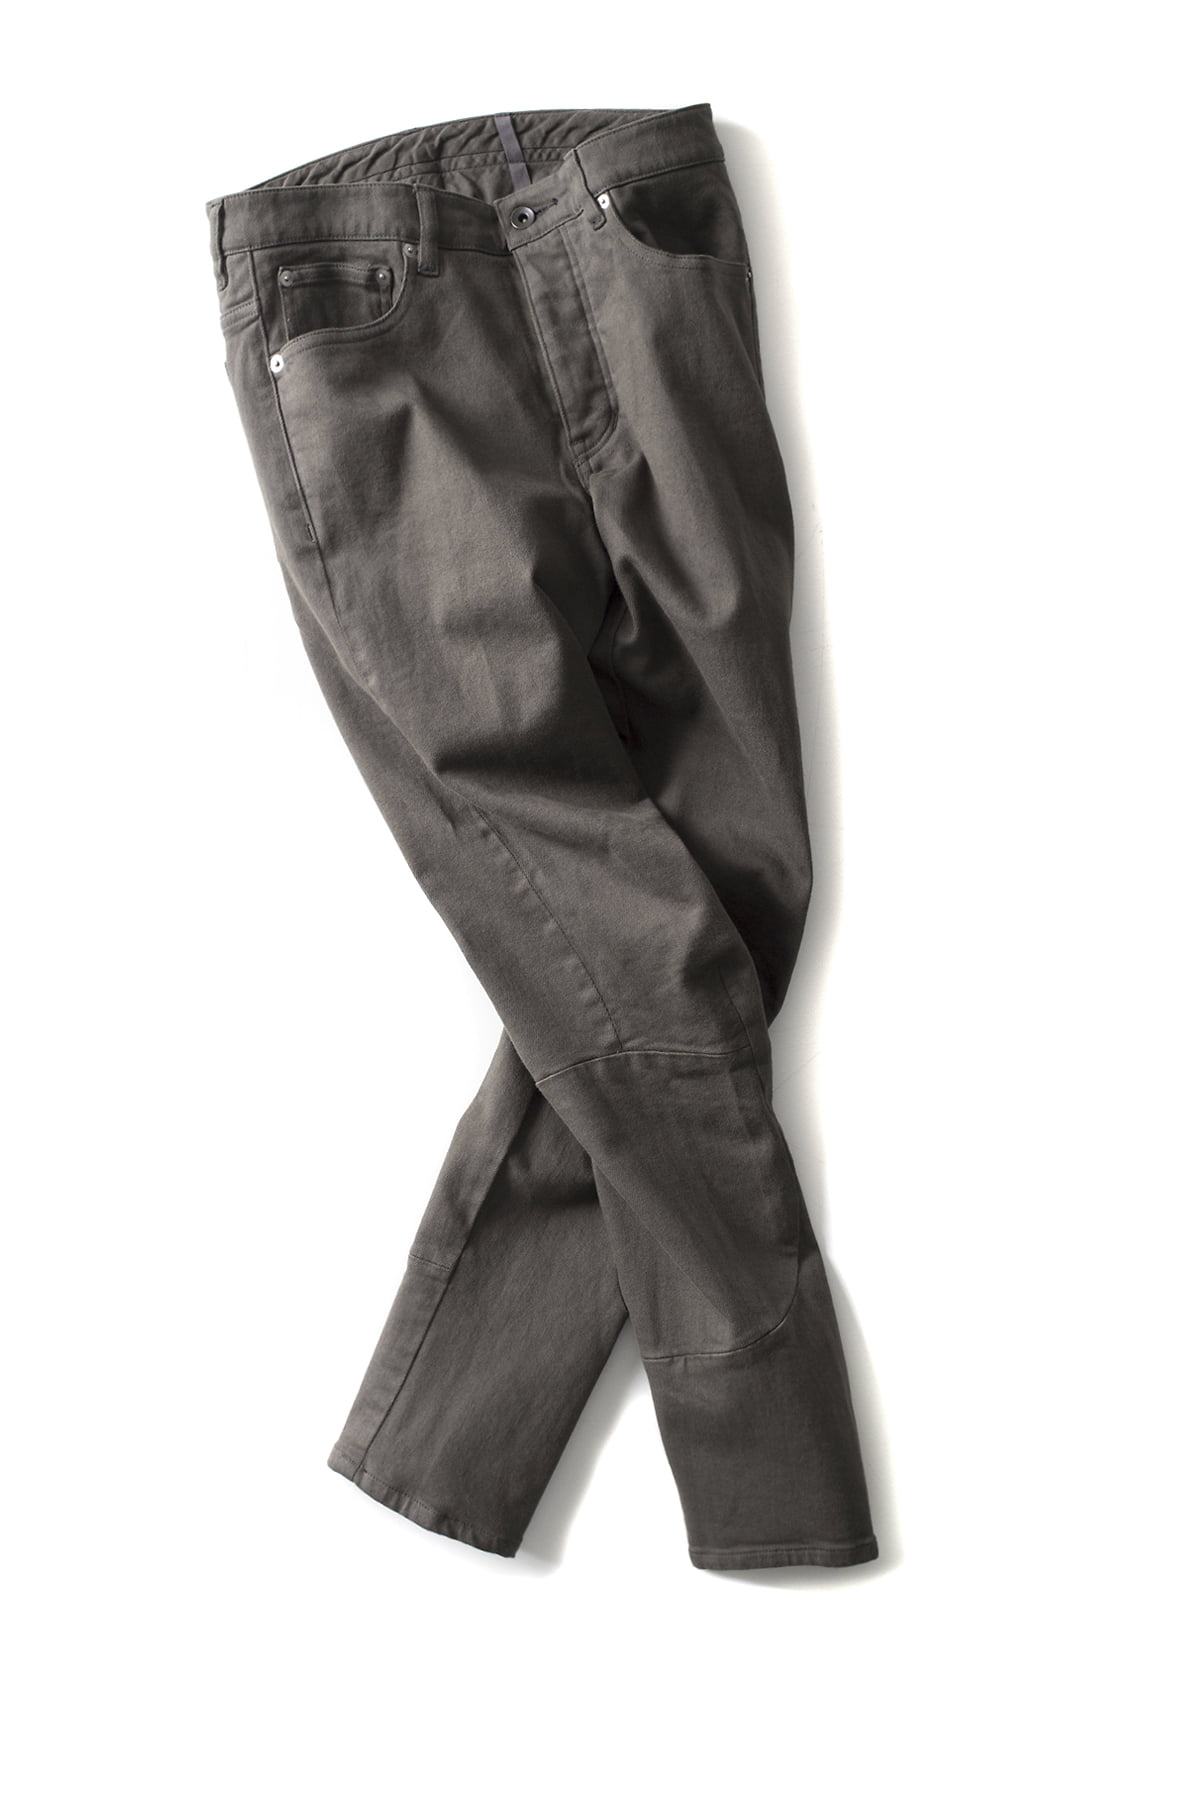 ATTACHMENT / KAZYUKI KUMAGAI : Stretch Biker Denim (Khaki Grey)